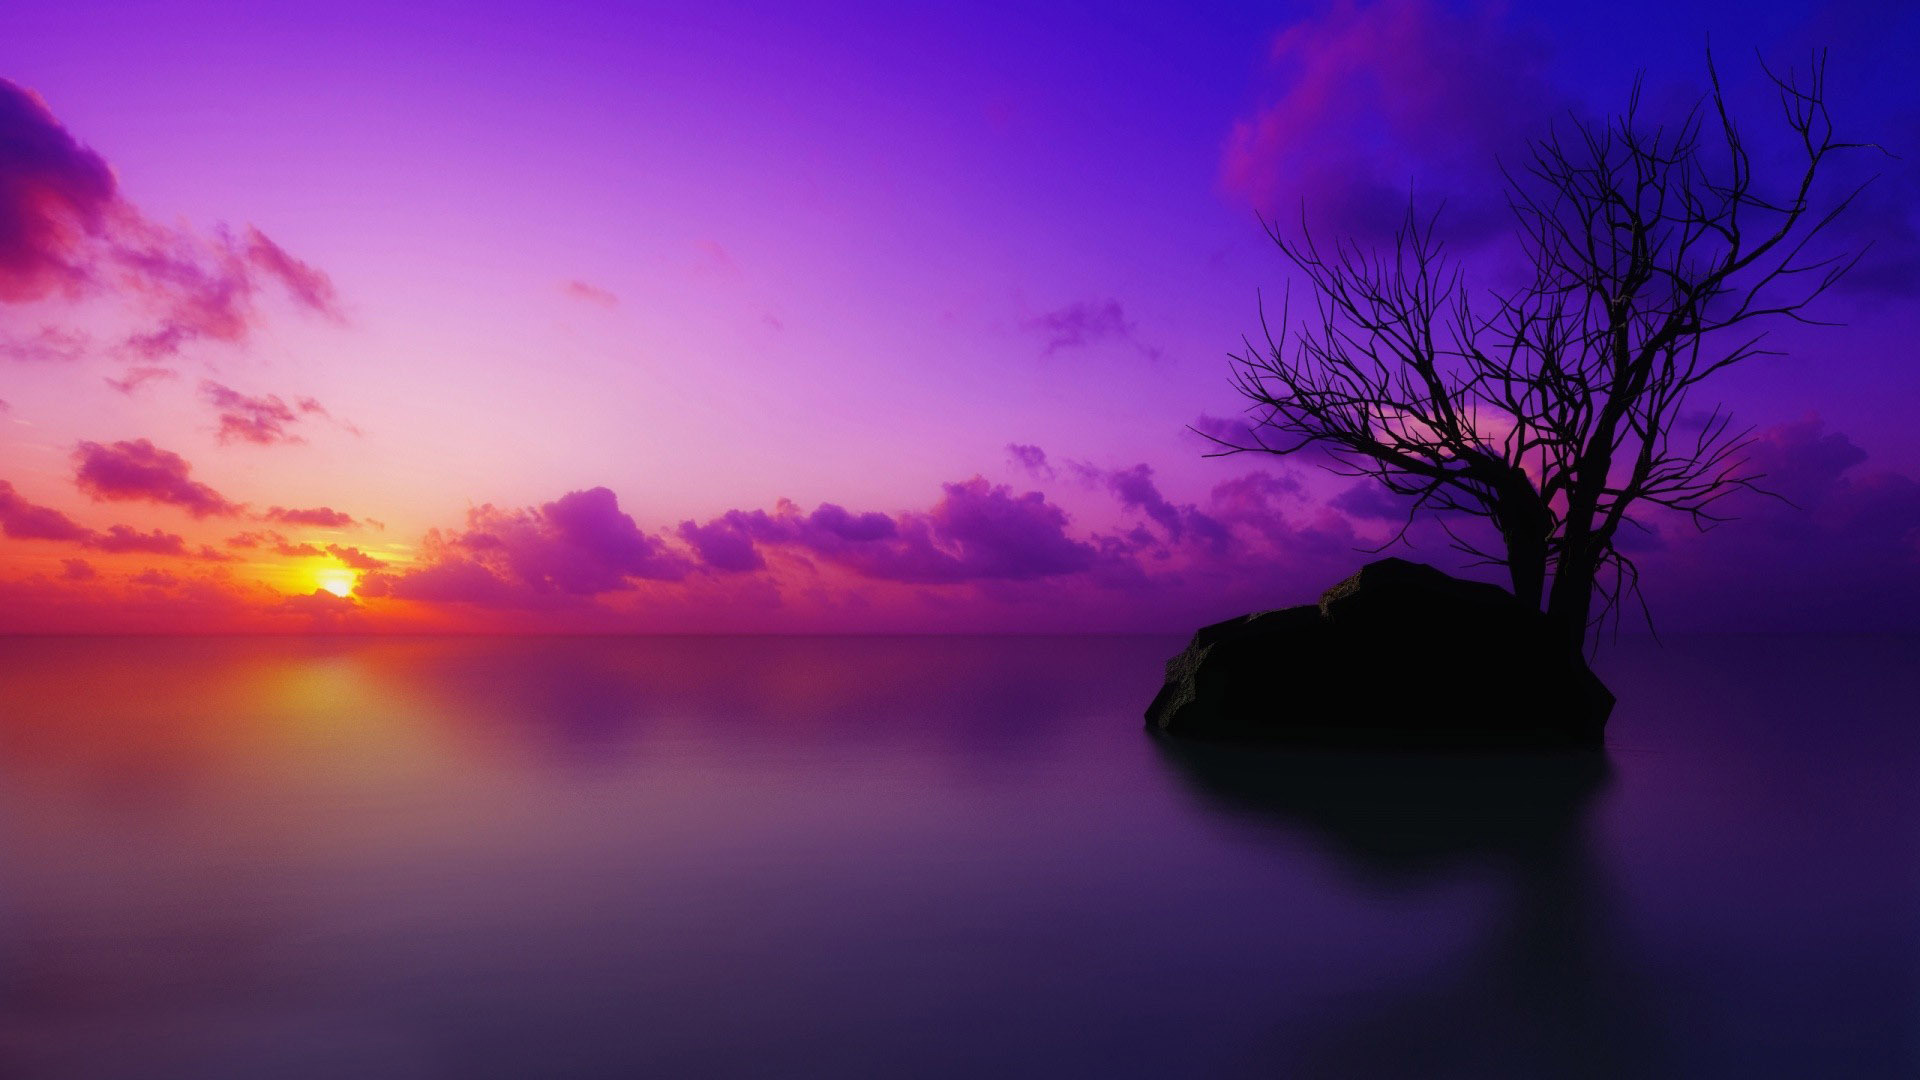 Purple Background Free Download Desktop Wallpaper Purple Purple Sunset Wallpaper Hd 1920x1080 Wallpaper Teahub Io